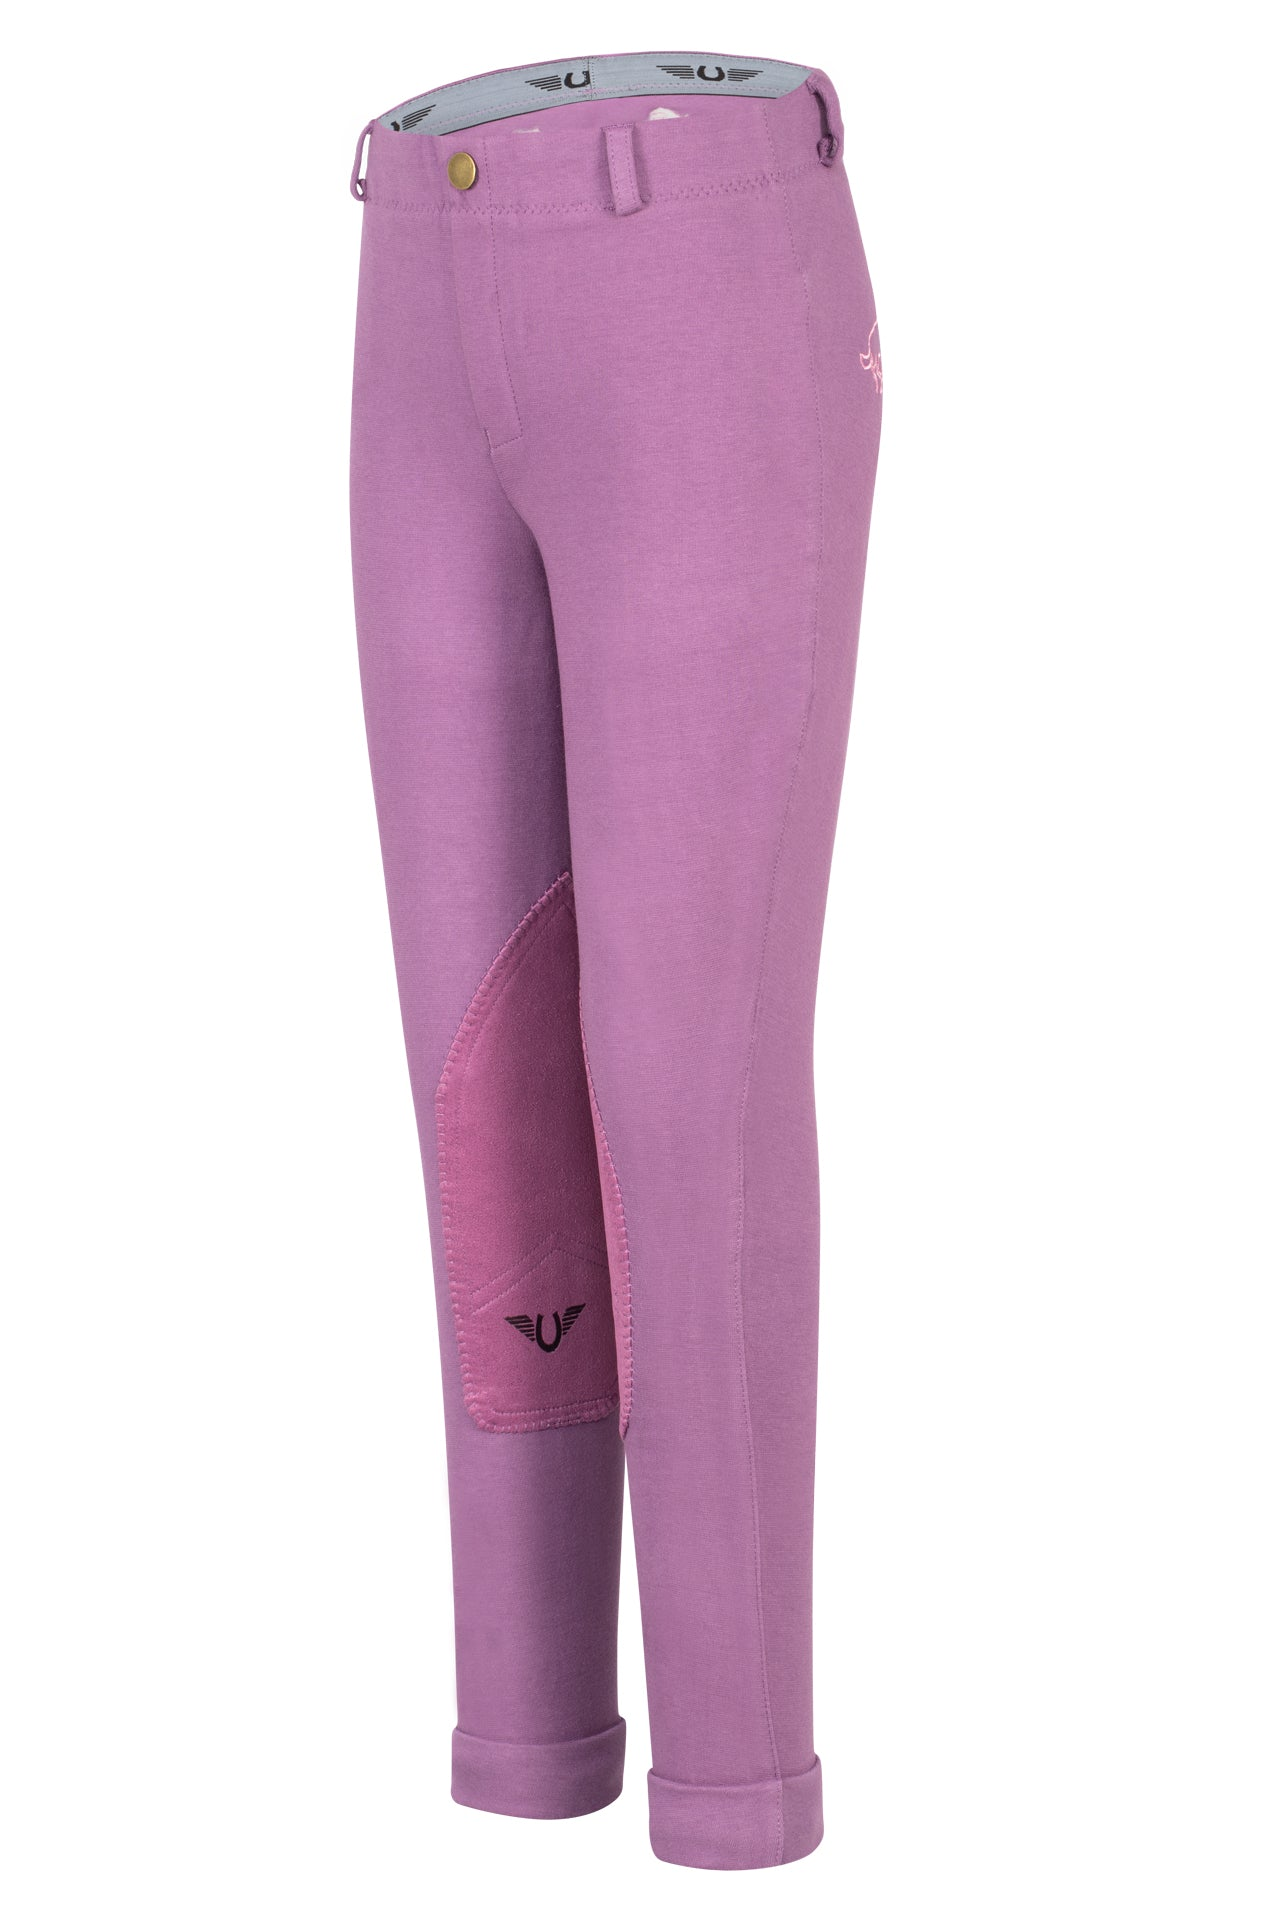 Children's Cotton Embroidered Pull-On Jods - TuffRider - Breeches.com